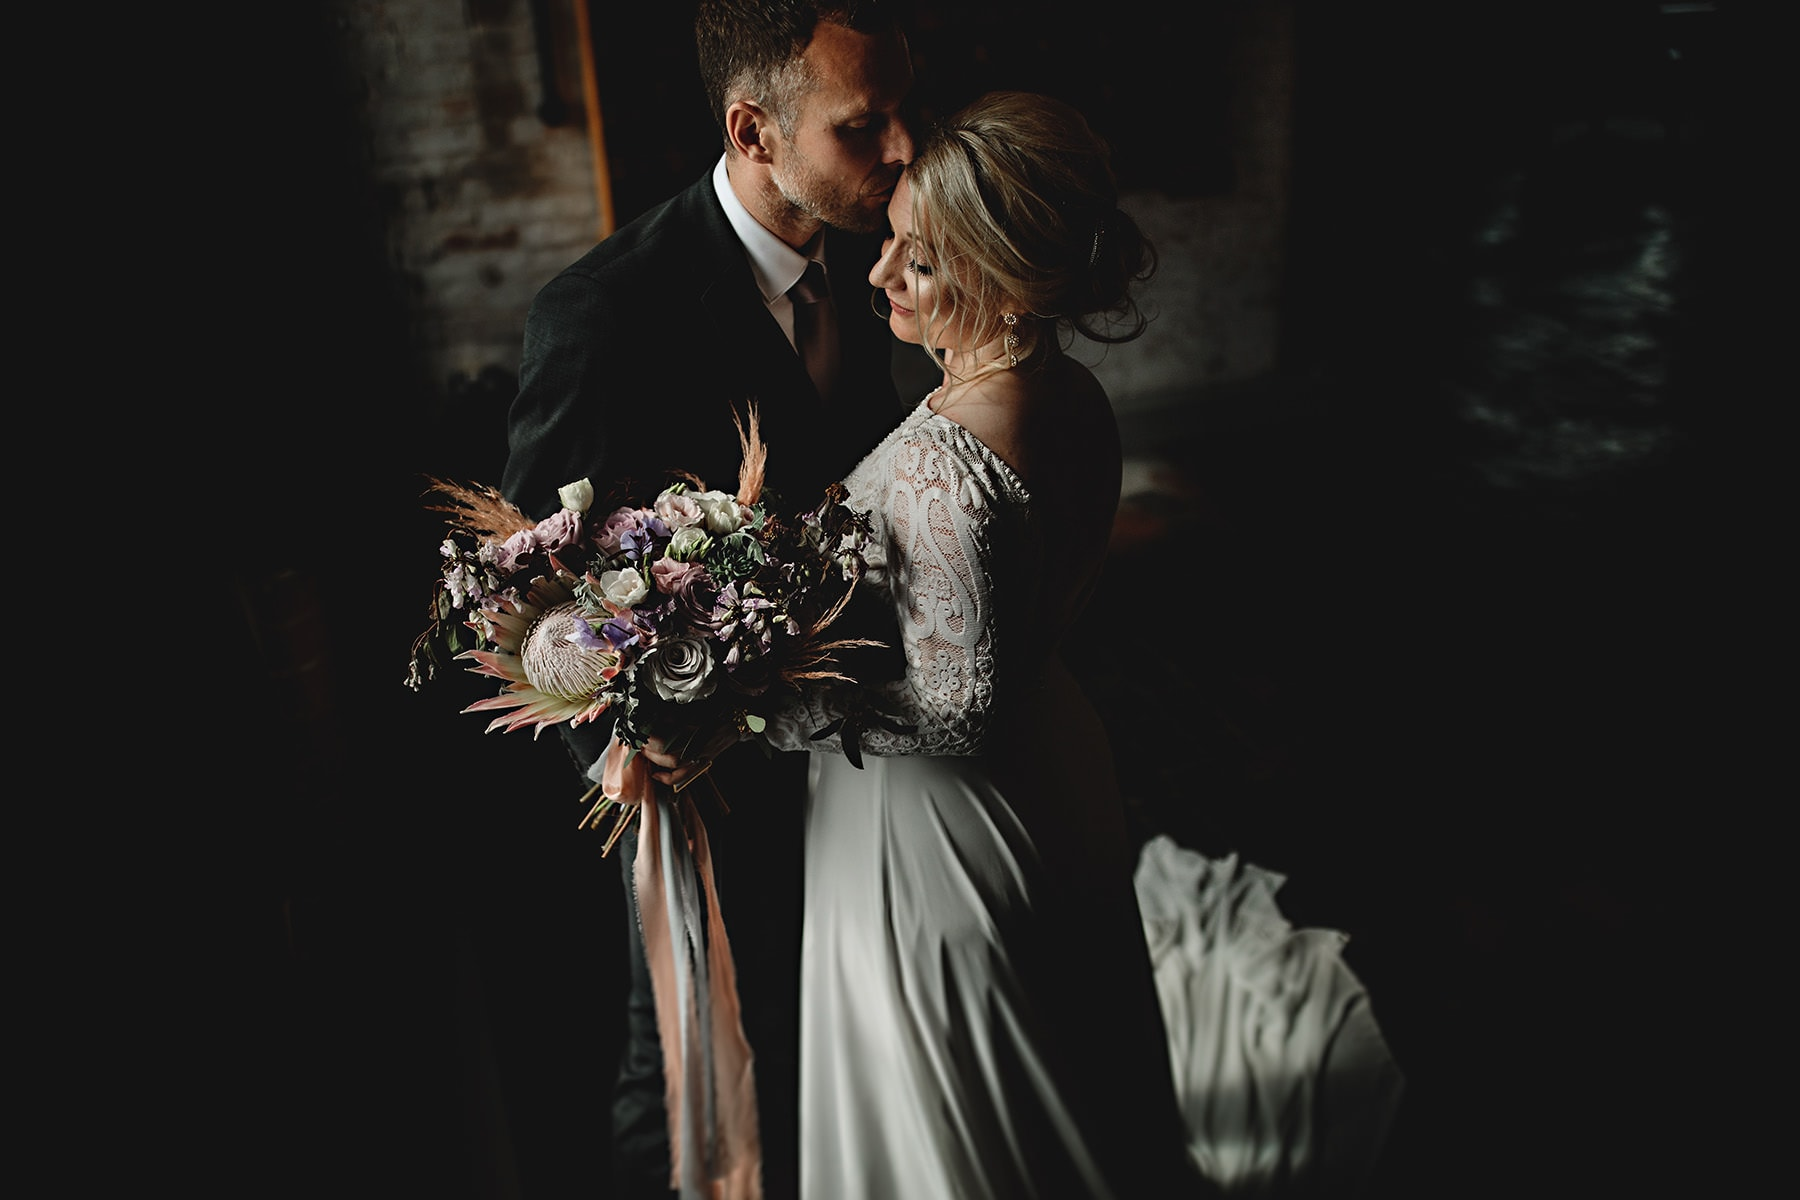 the bride and groom stood together holding beautiful flowers in dark light on their wedding day at the west mill in derbyshire